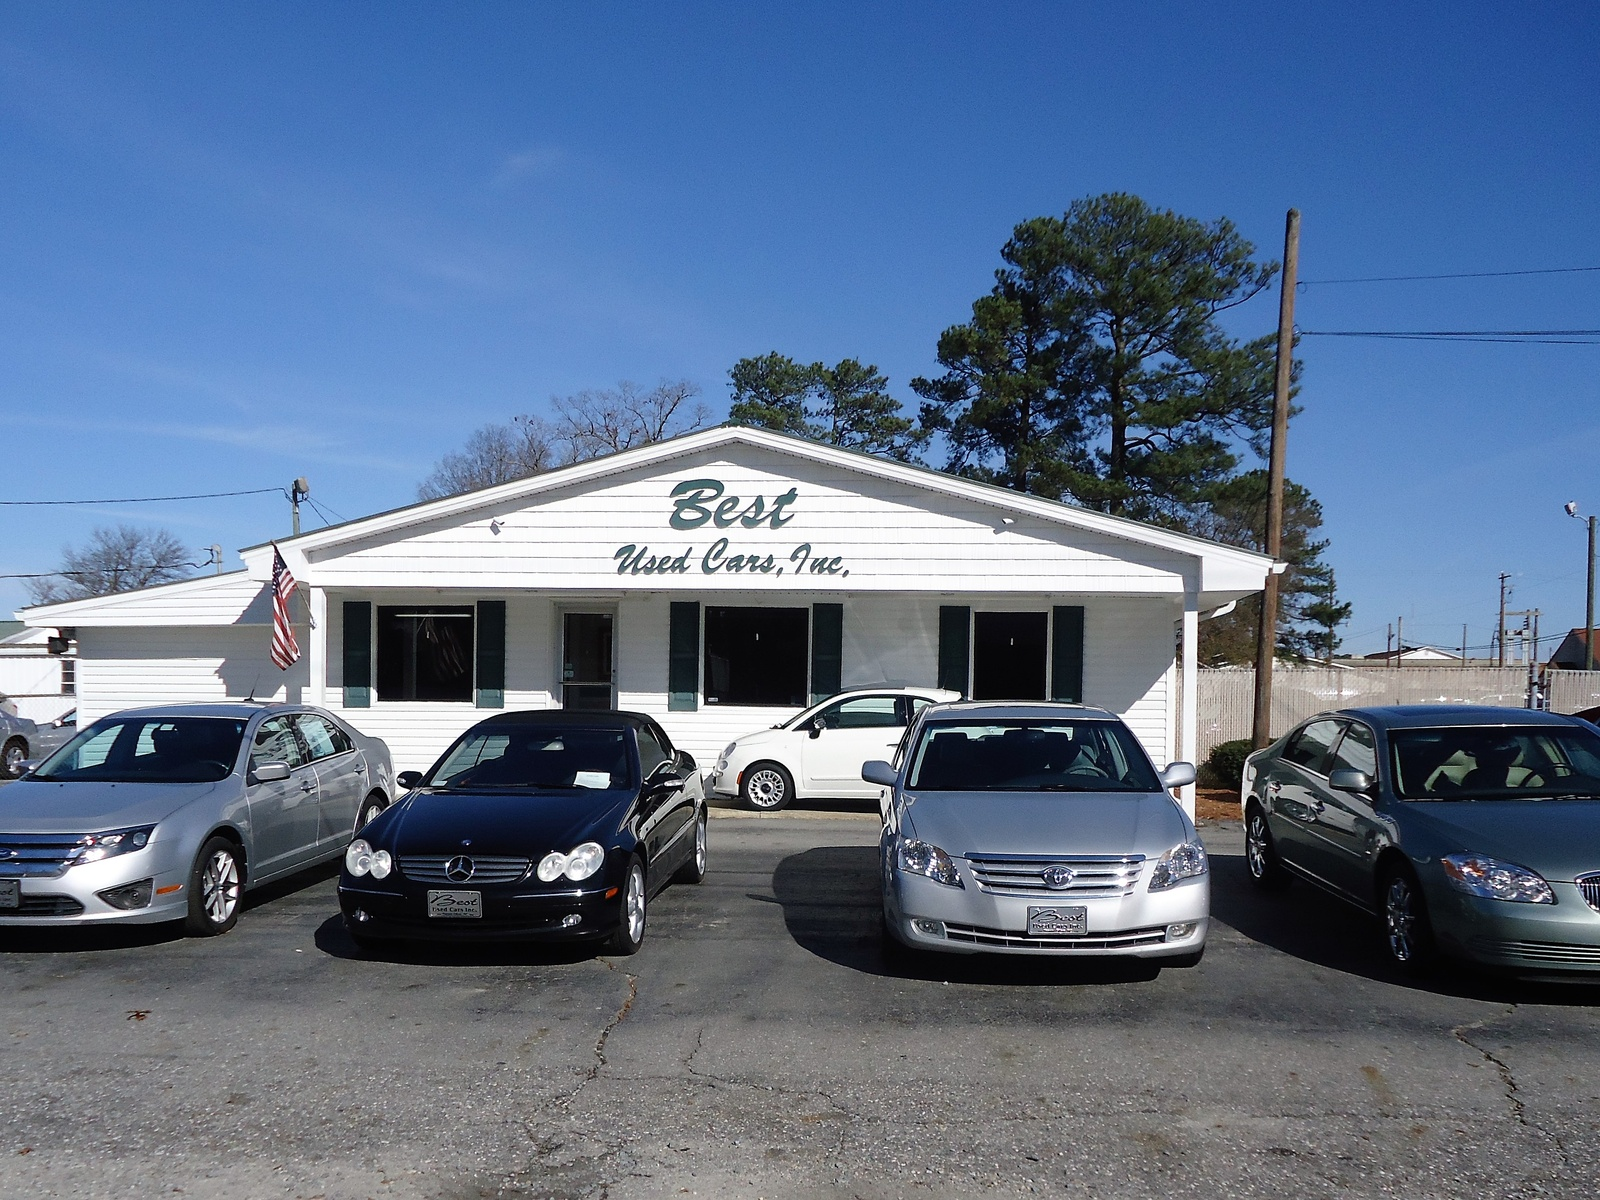 best used cars inc mount olive nc read consumer reviews browse used and new cars for sale. Black Bedroom Furniture Sets. Home Design Ideas